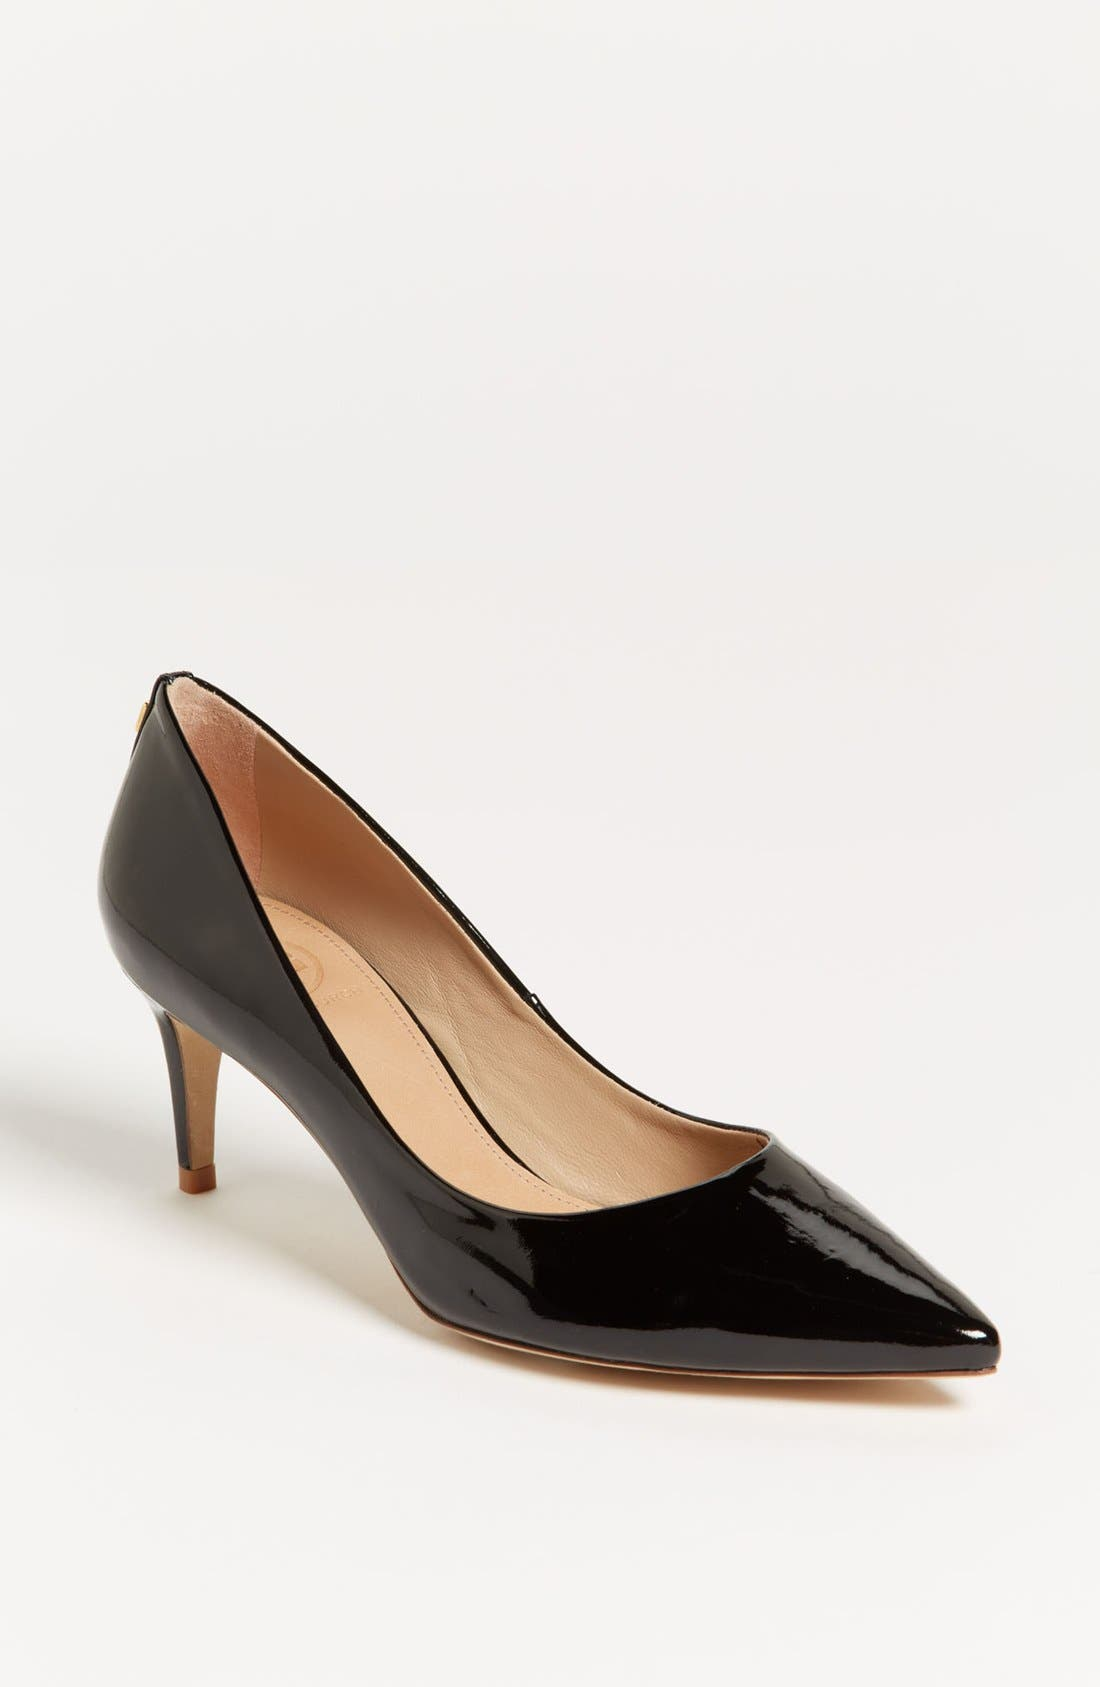 Alternate Image 1 Selected - Tory Burch 'Ivy' Pump (Online Only)